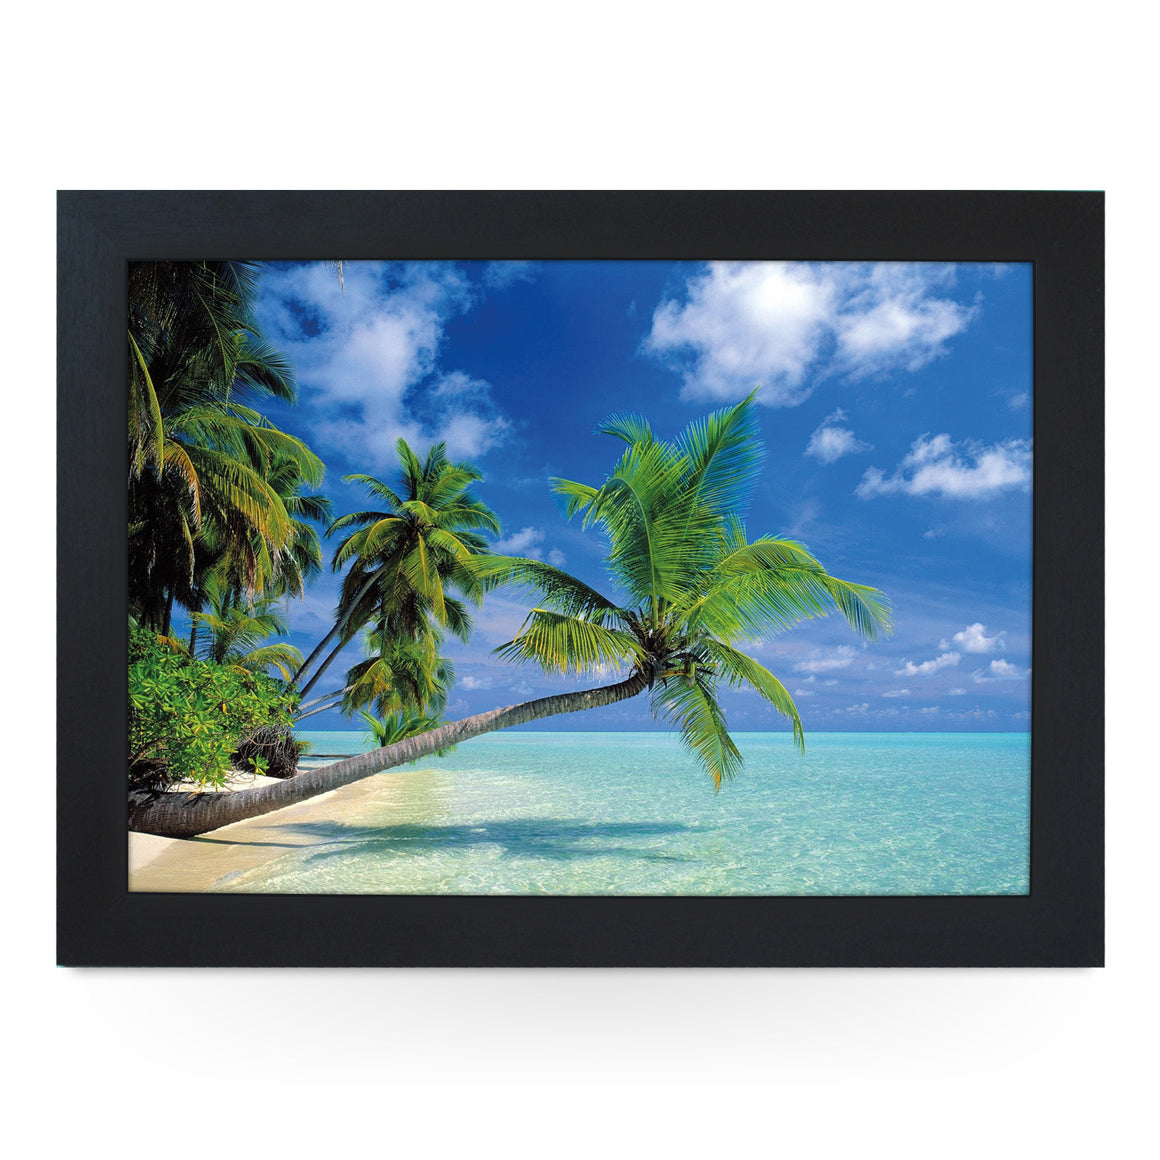 Tropical Beach Lap Tray - L0396